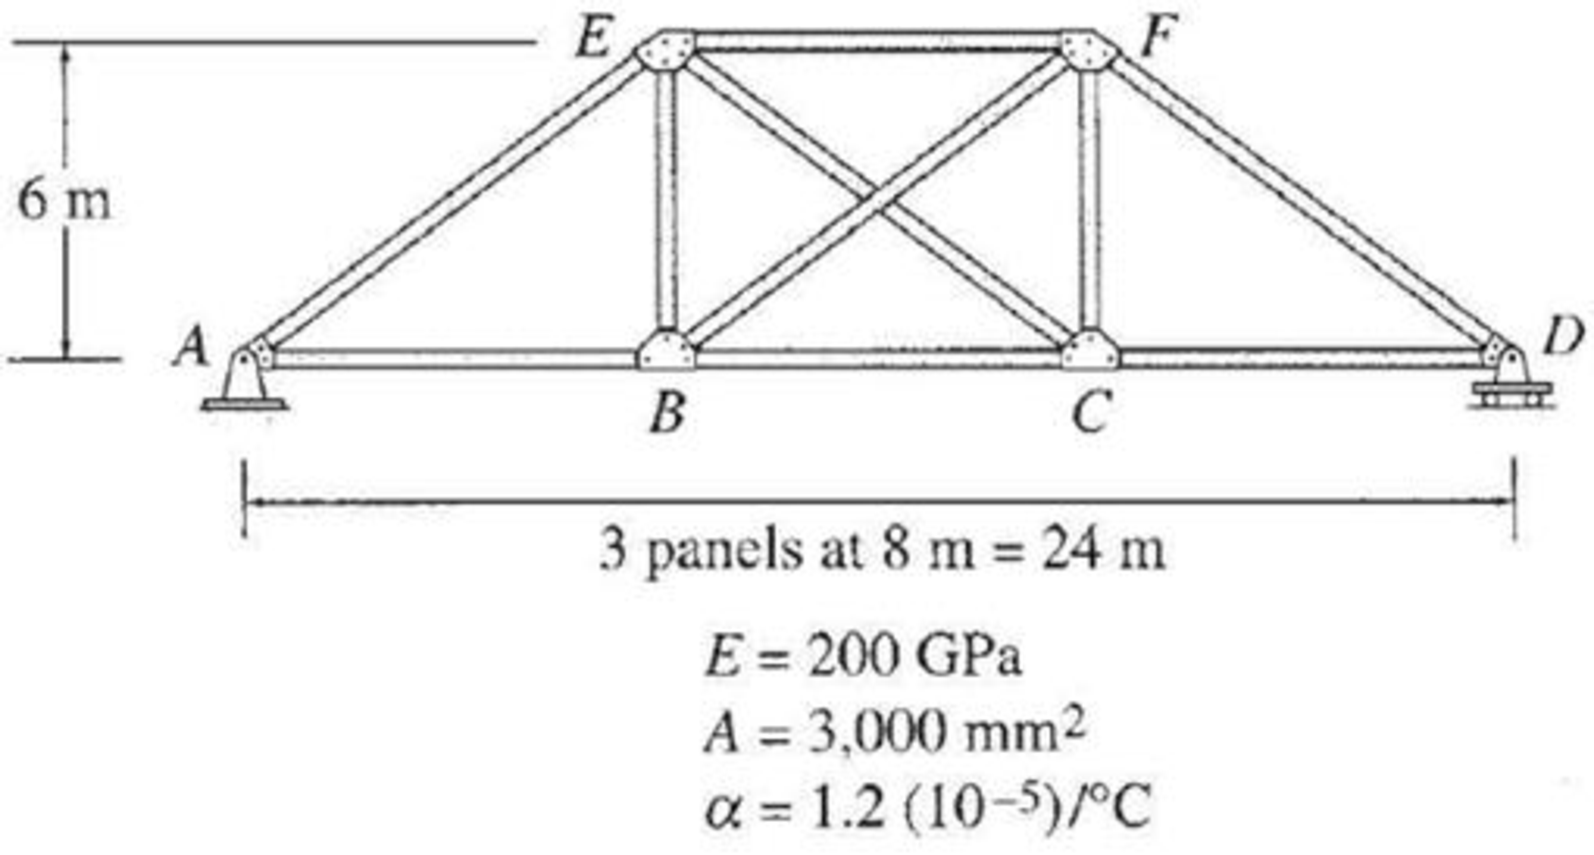 Chapter 13, Problem 55P, Determine the reactions and the force in each member of the truss shown in Fig. P13.55 due to a